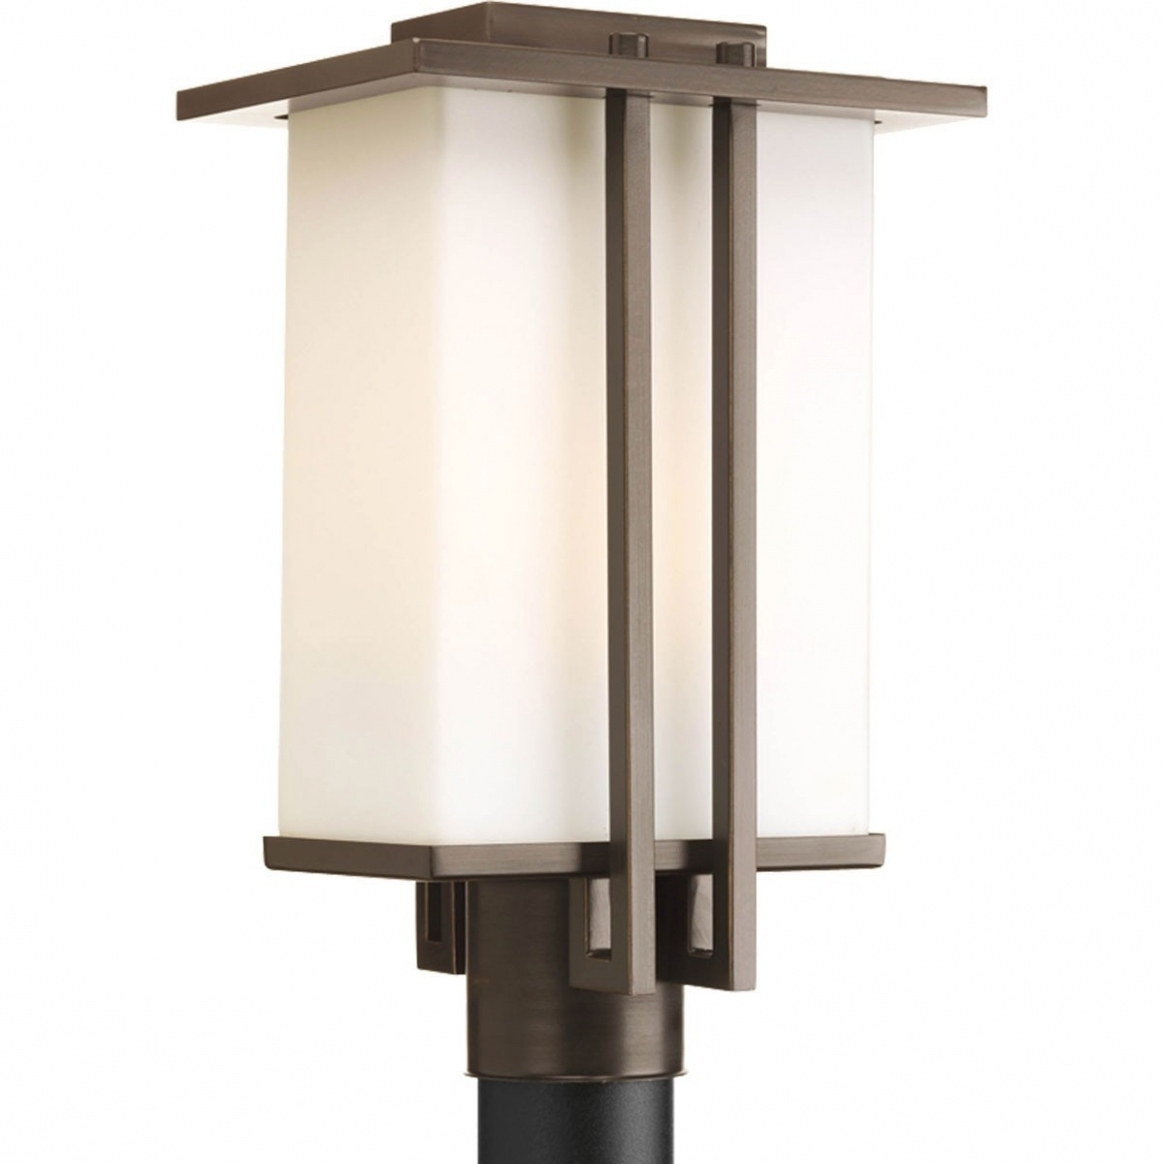 Lighting: Modern Outdoor Lamp Post Lights • Outdoor Lighting for Outdoor Lanterns on Post (Image 11 of 20)